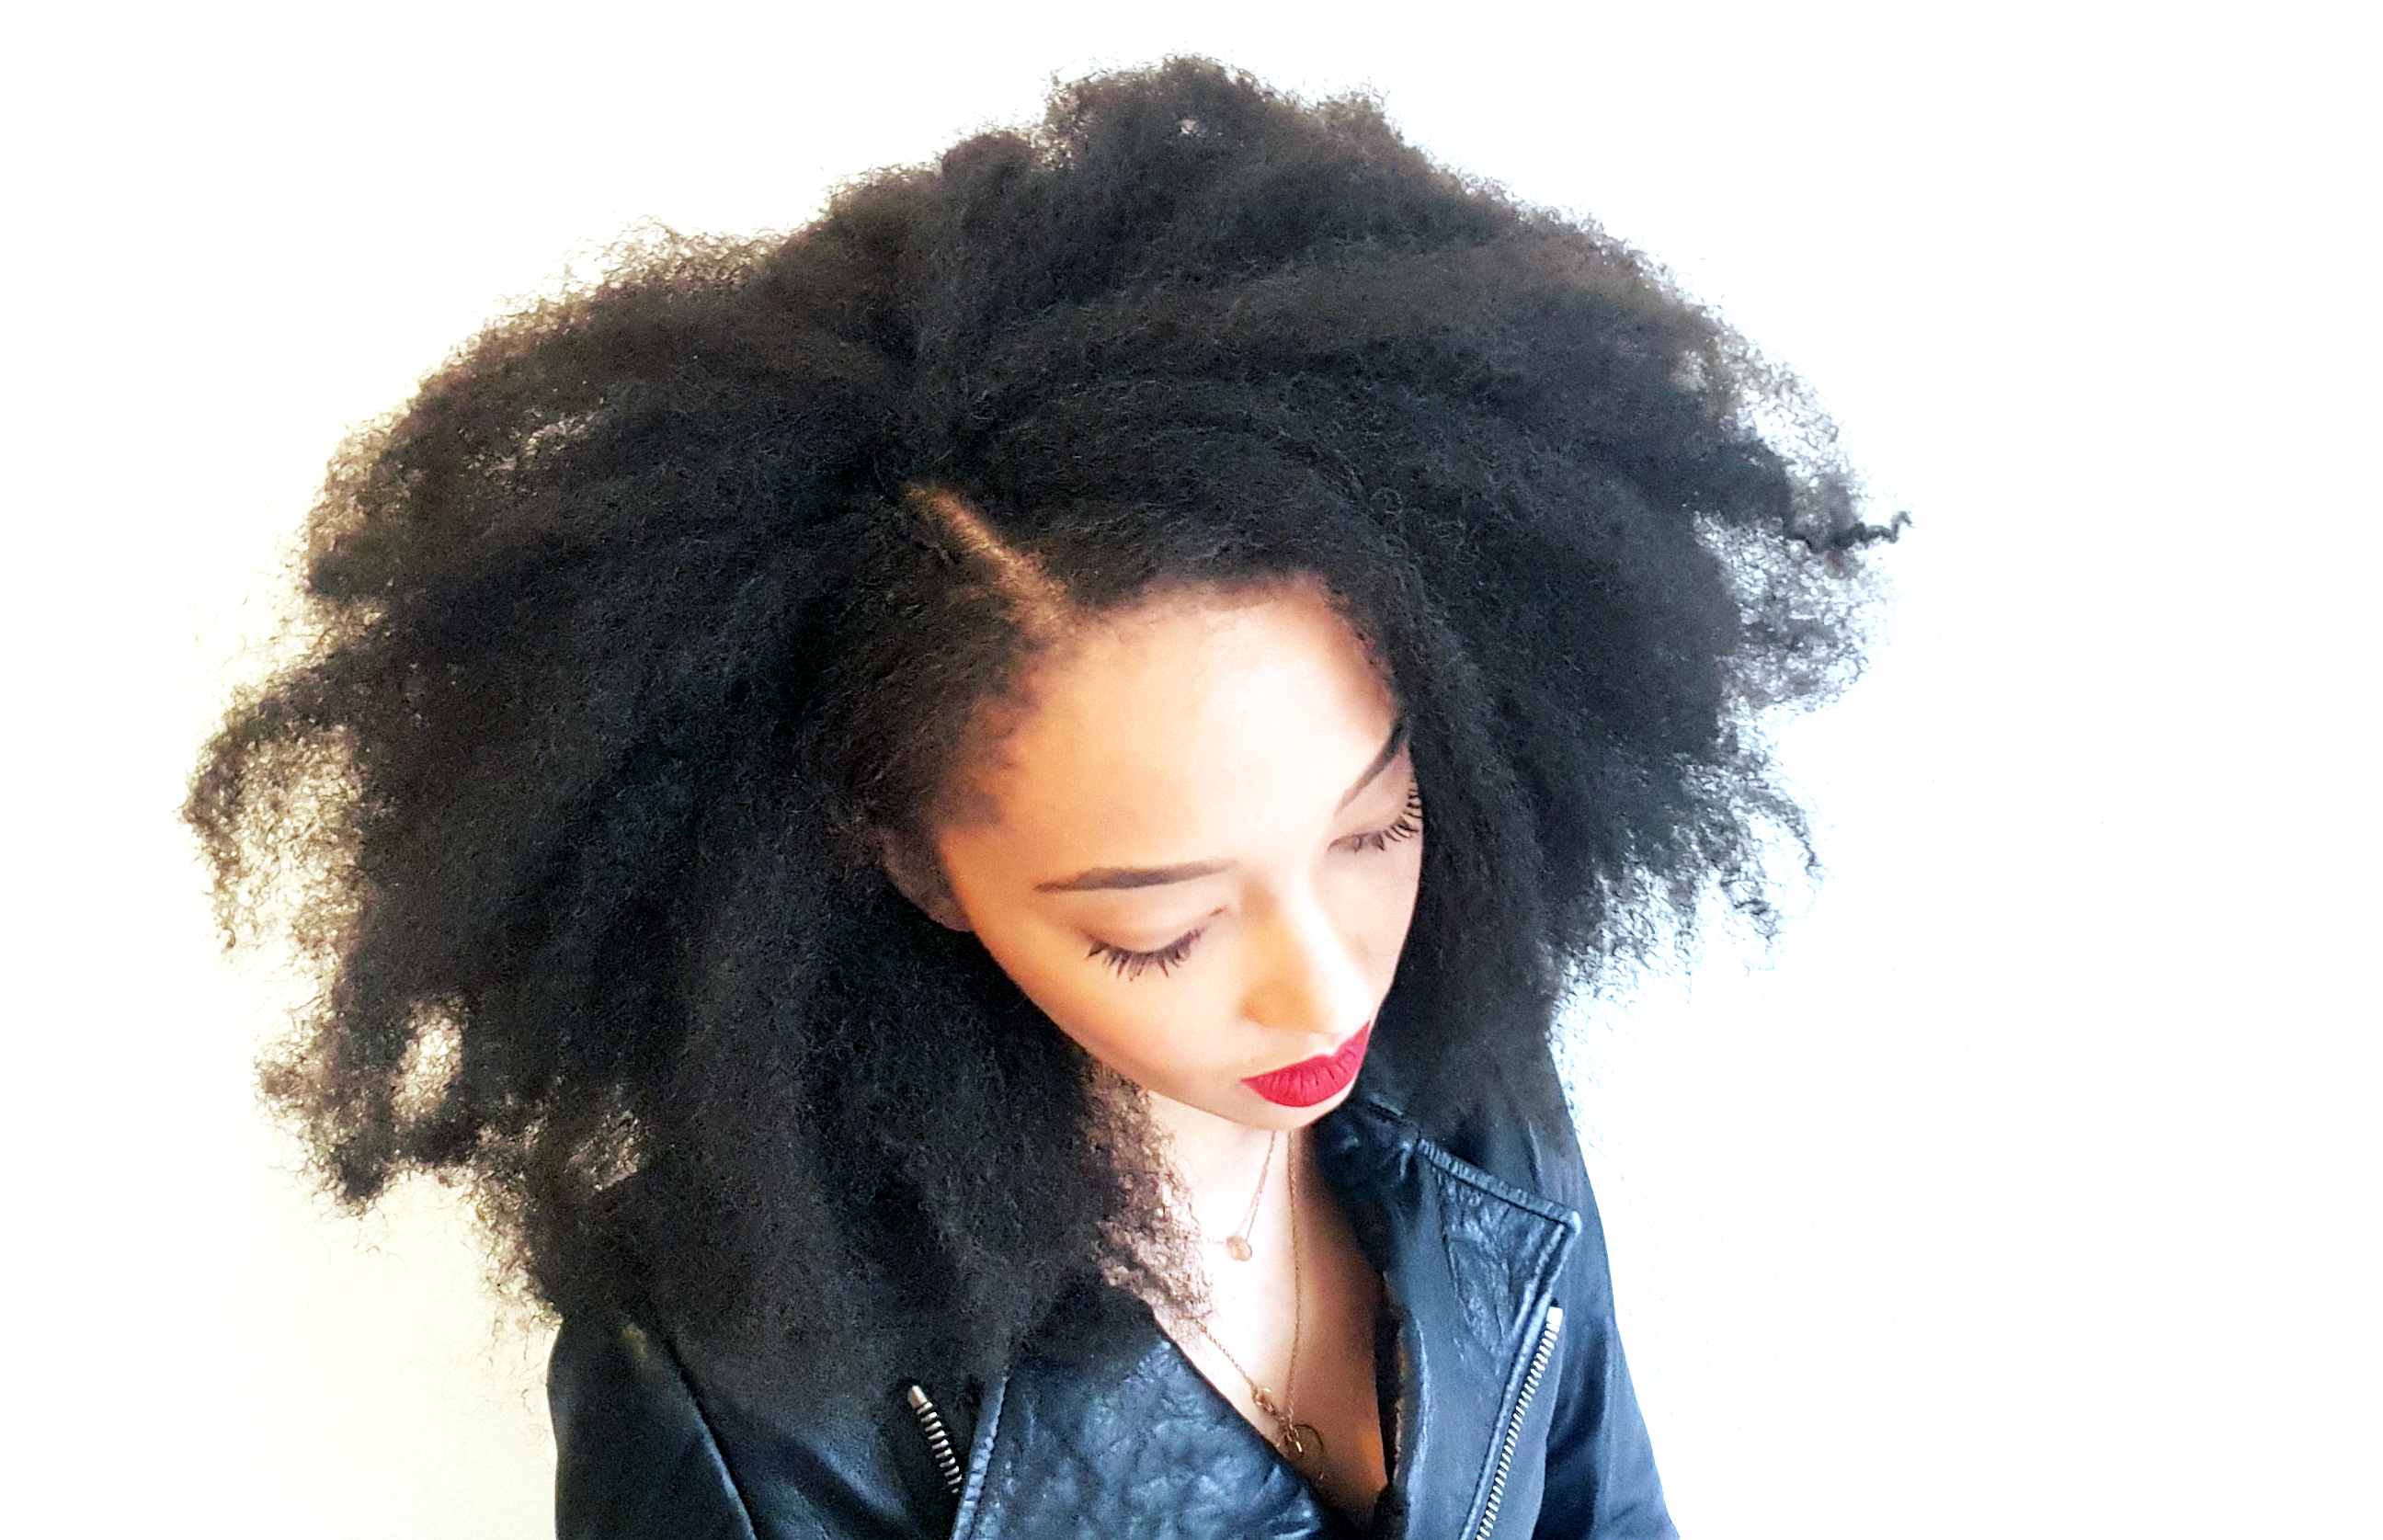 mercredie-blog-beaute-coiffure-cheveux-afro-frises-crochet-braids-braid-mojito-twist-superbeaute-kinky-big-hair2